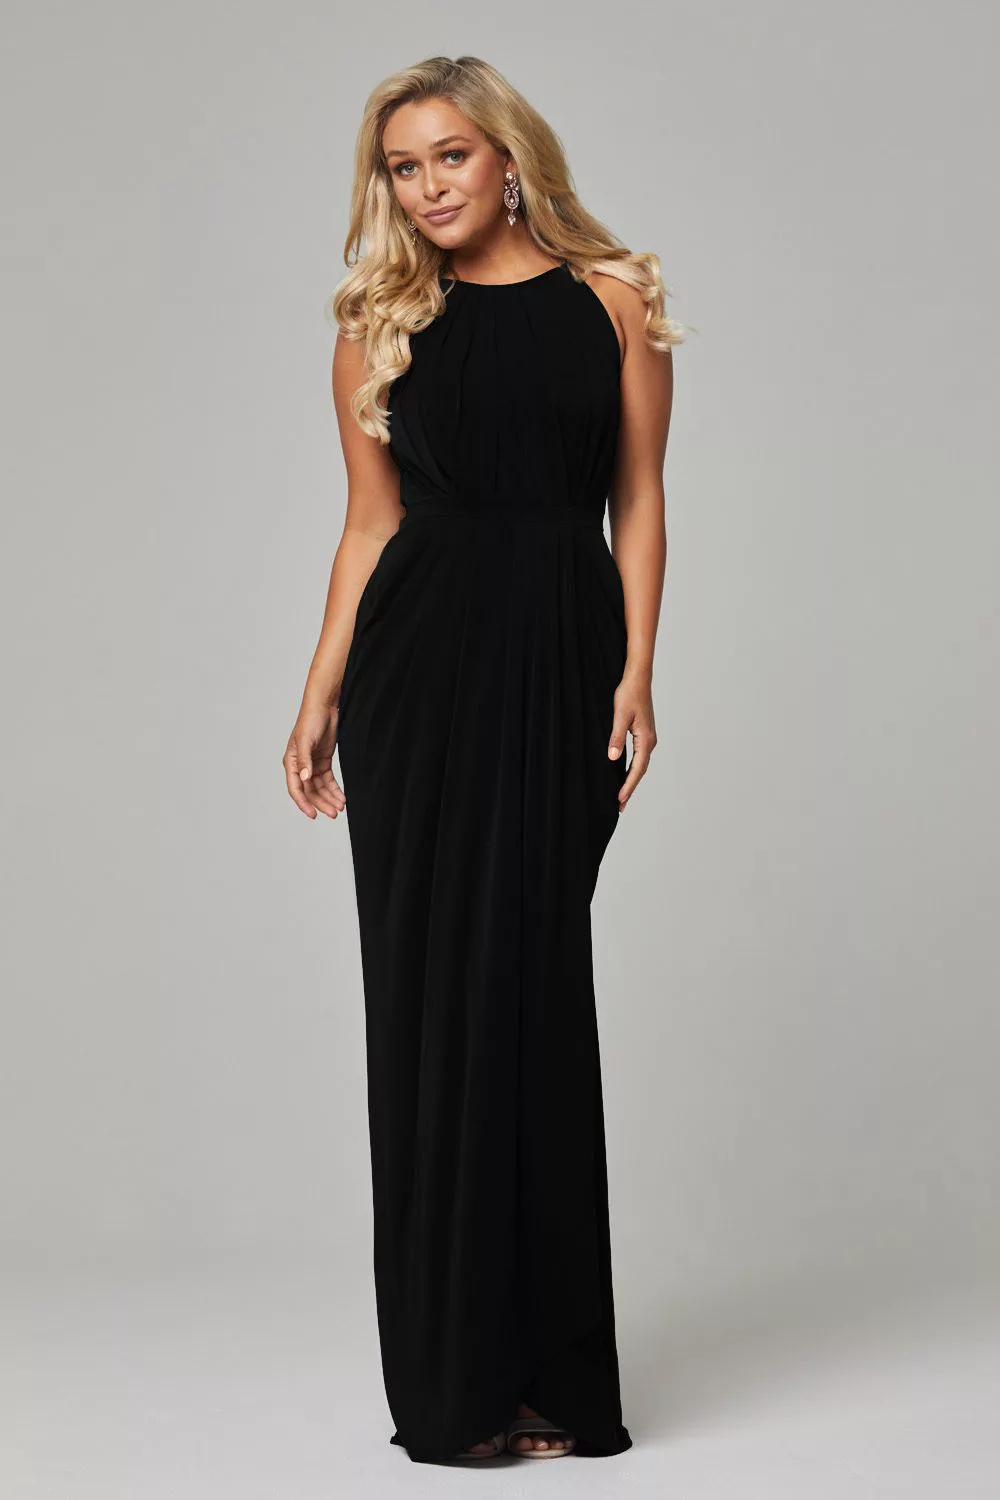 Sandra Bridesmaids Dress by Tania Olsen - Black